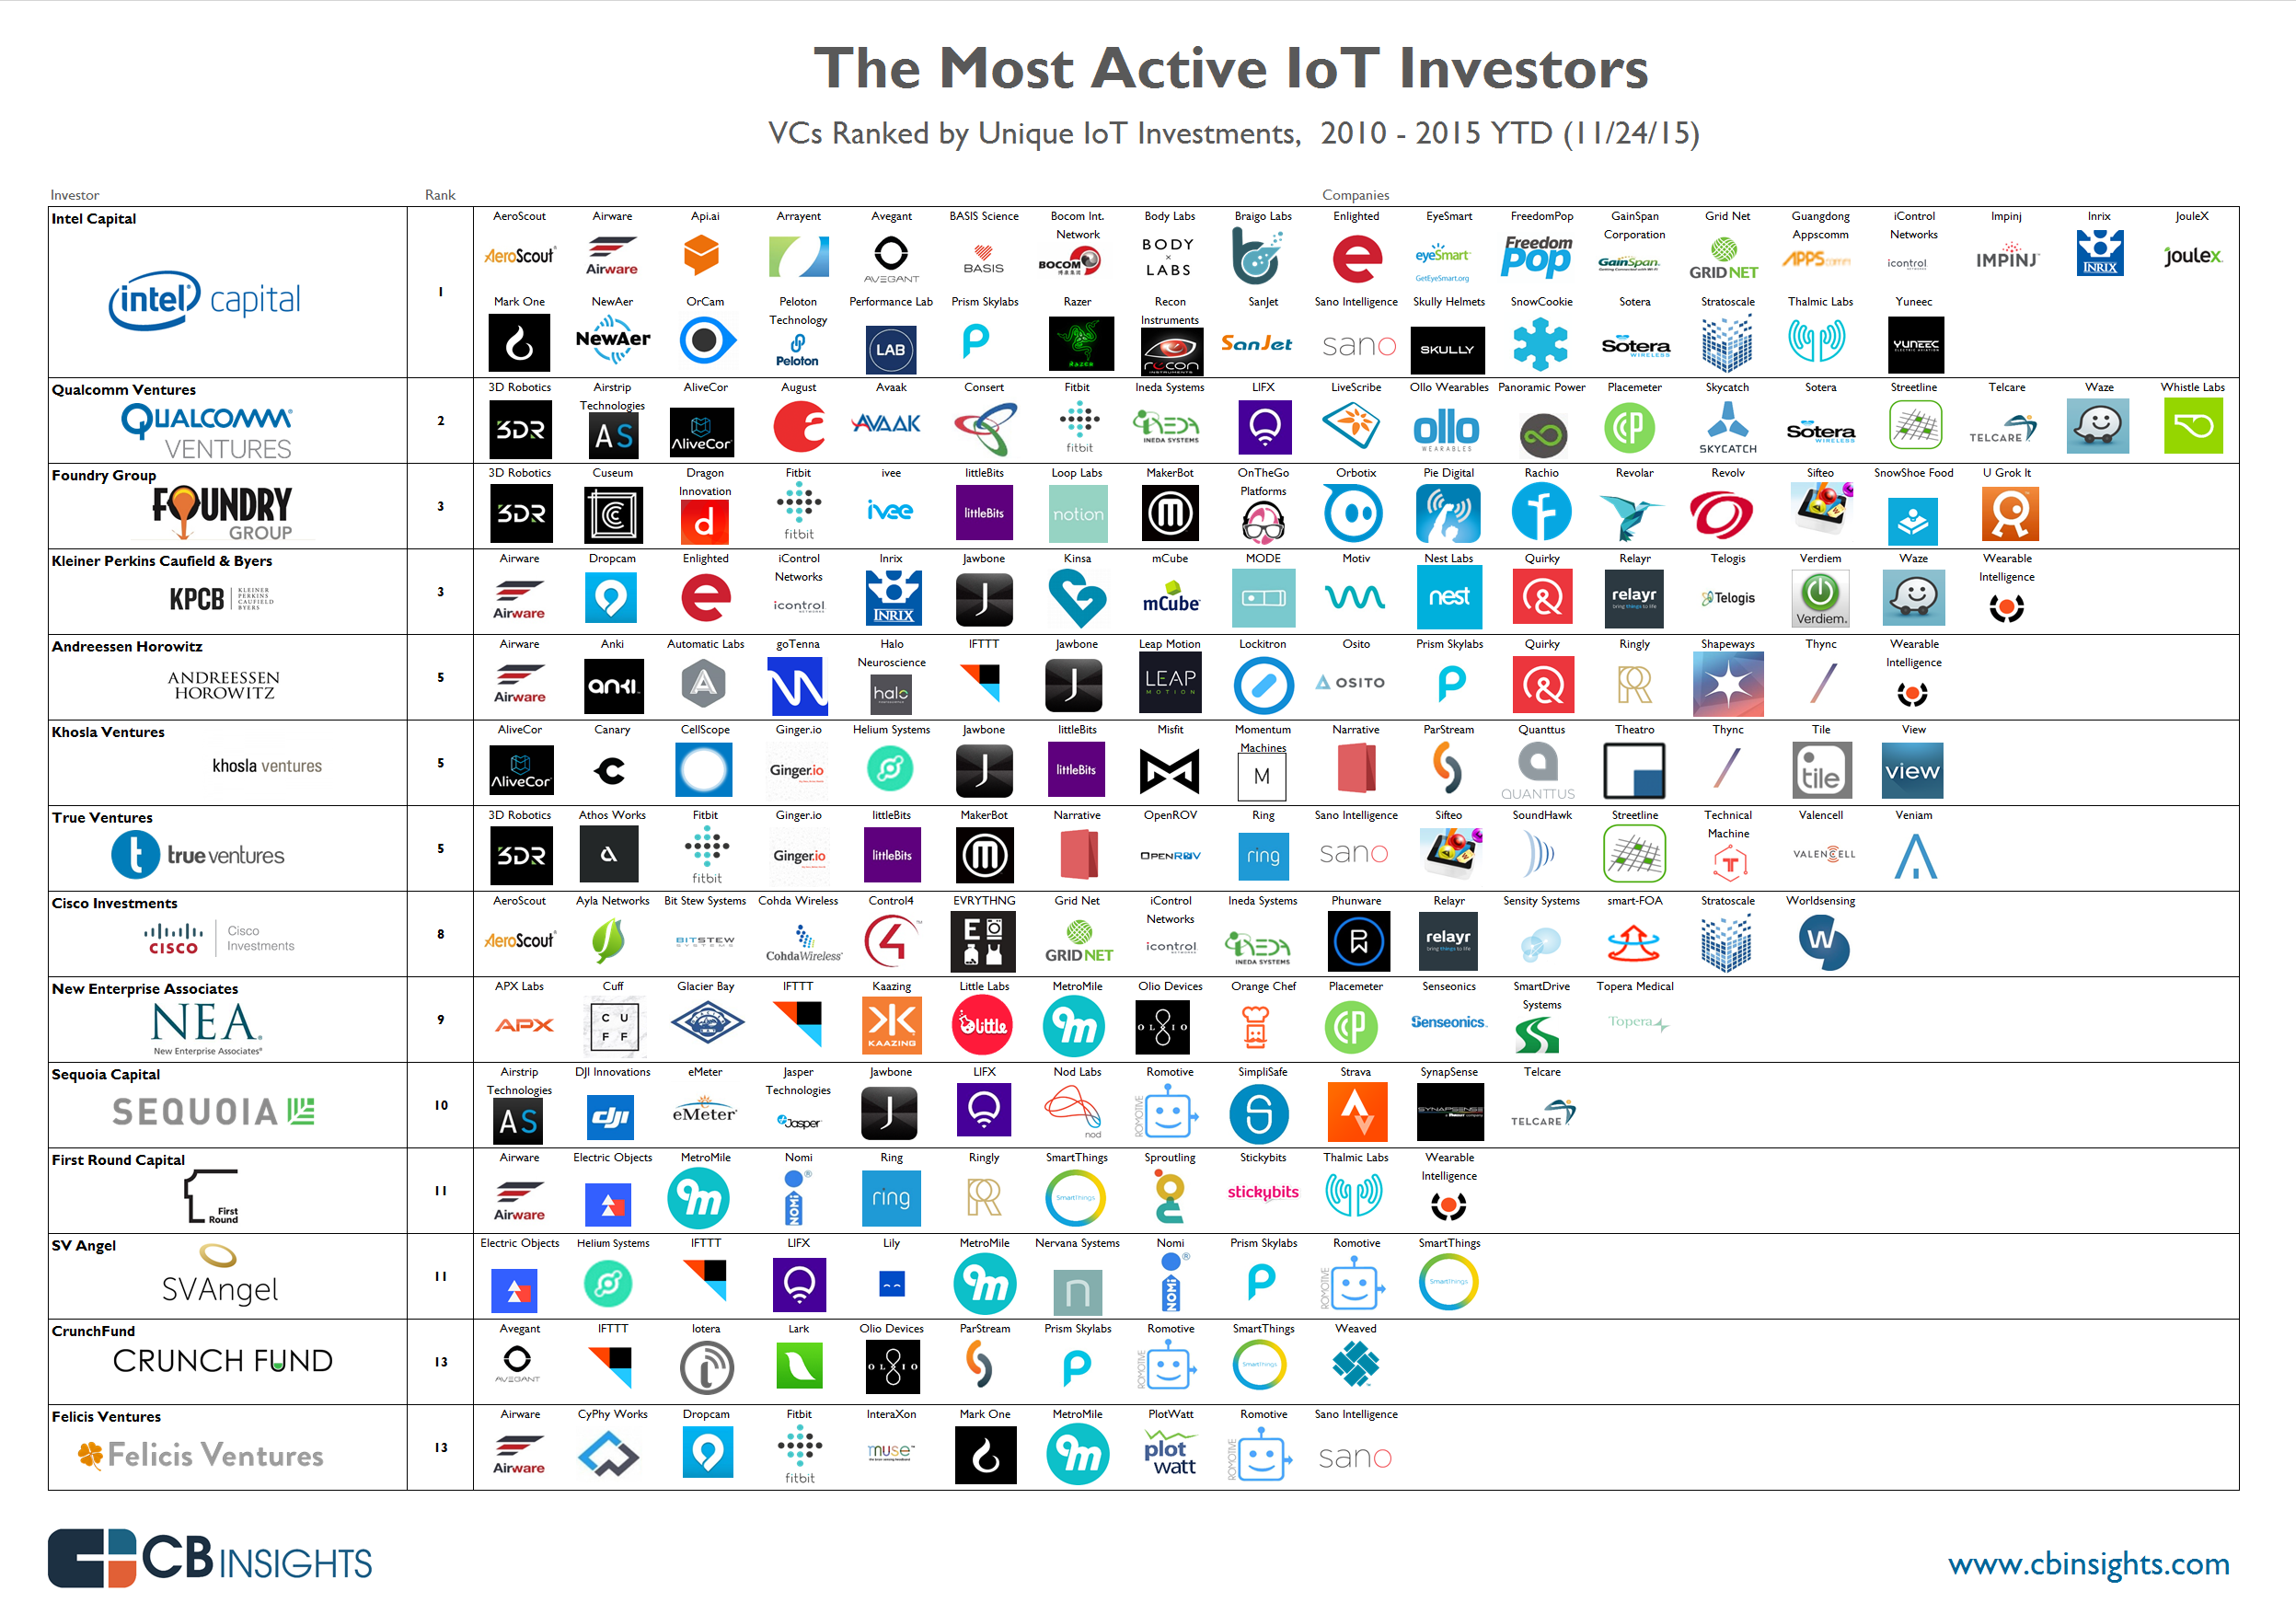 The Most Active IoT Investors